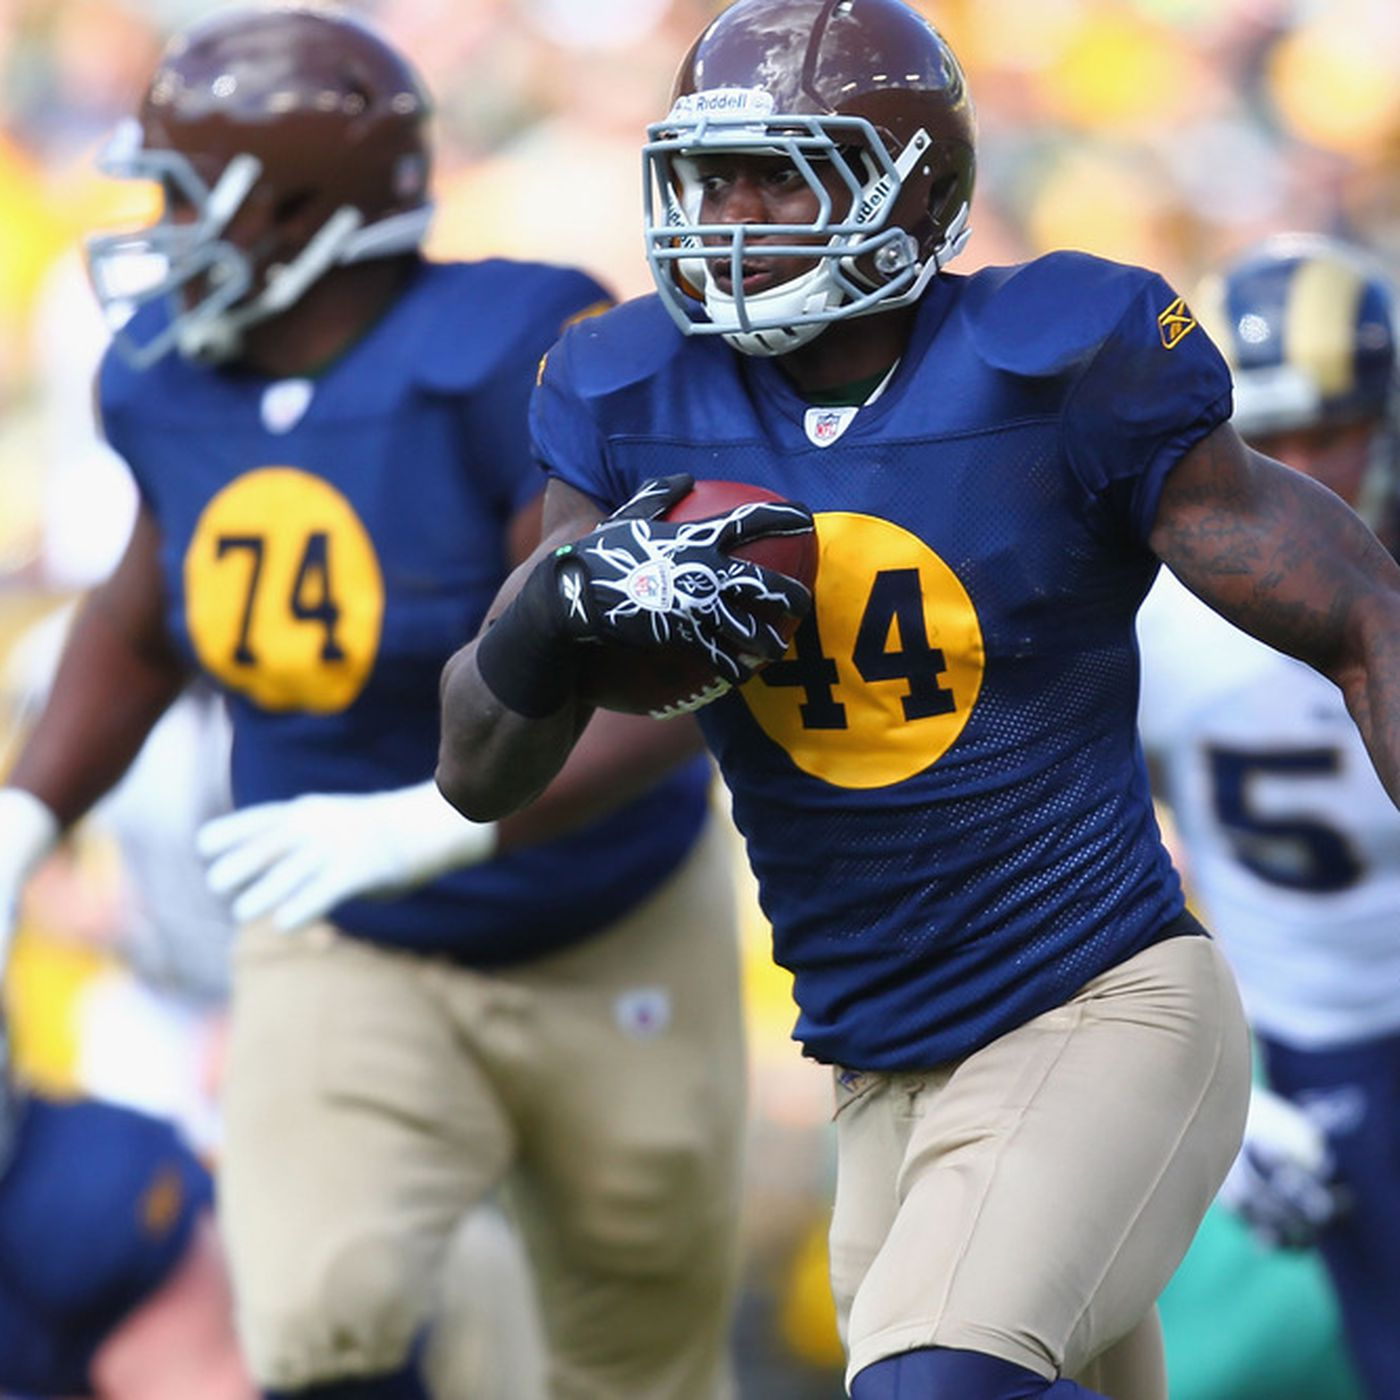 NFL Notes & Records: Week 6 -- Have we seen the last of McNabb ...